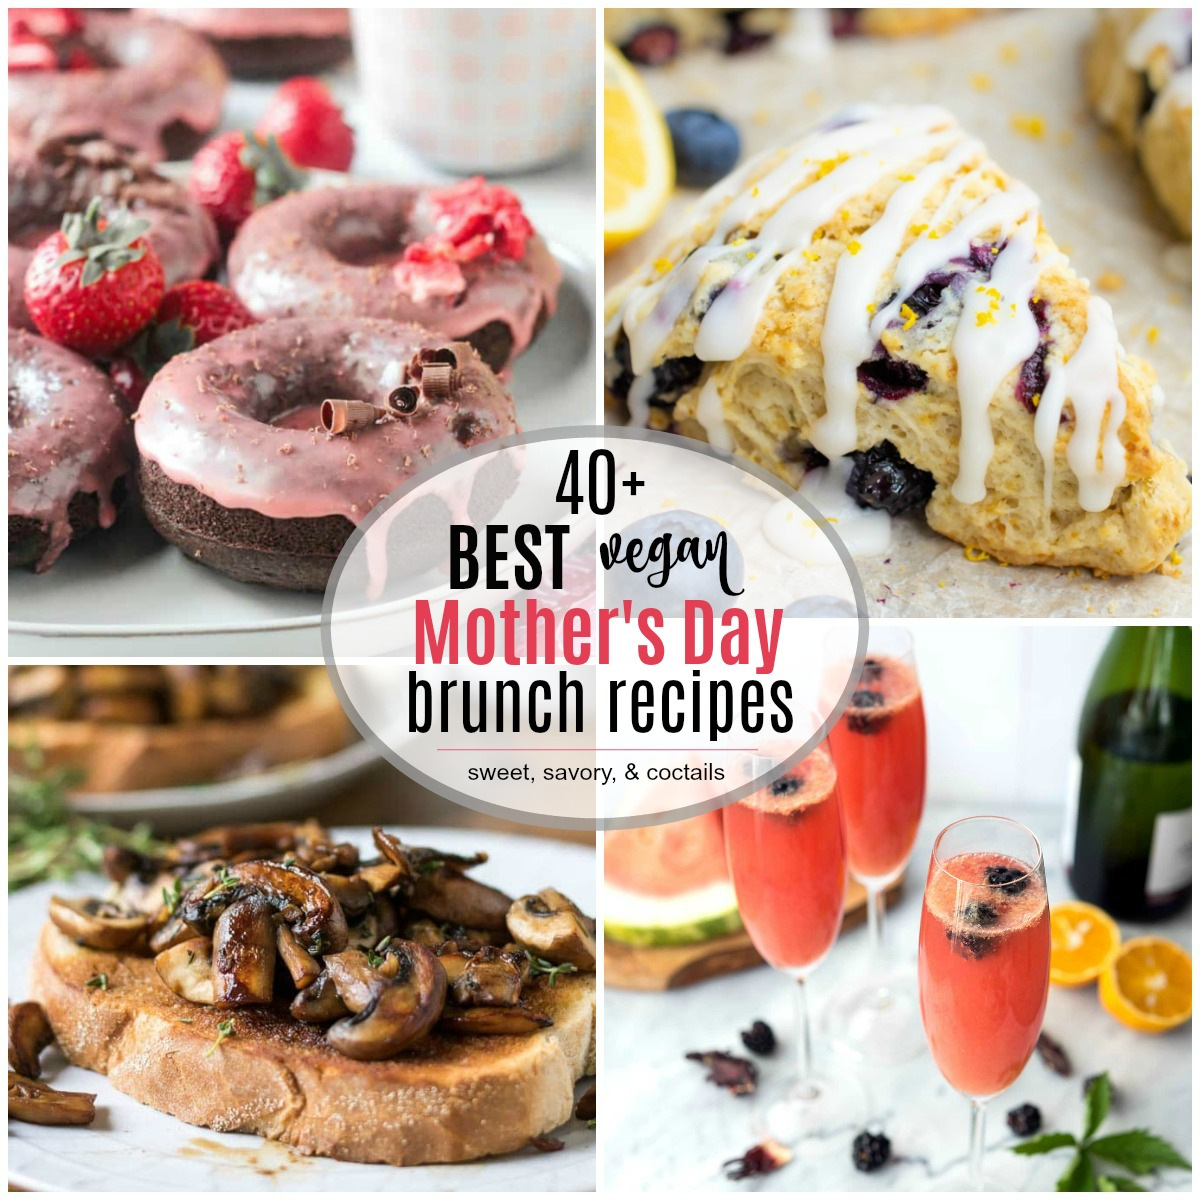 A collage of vegan Mother's Day brunch recipes.